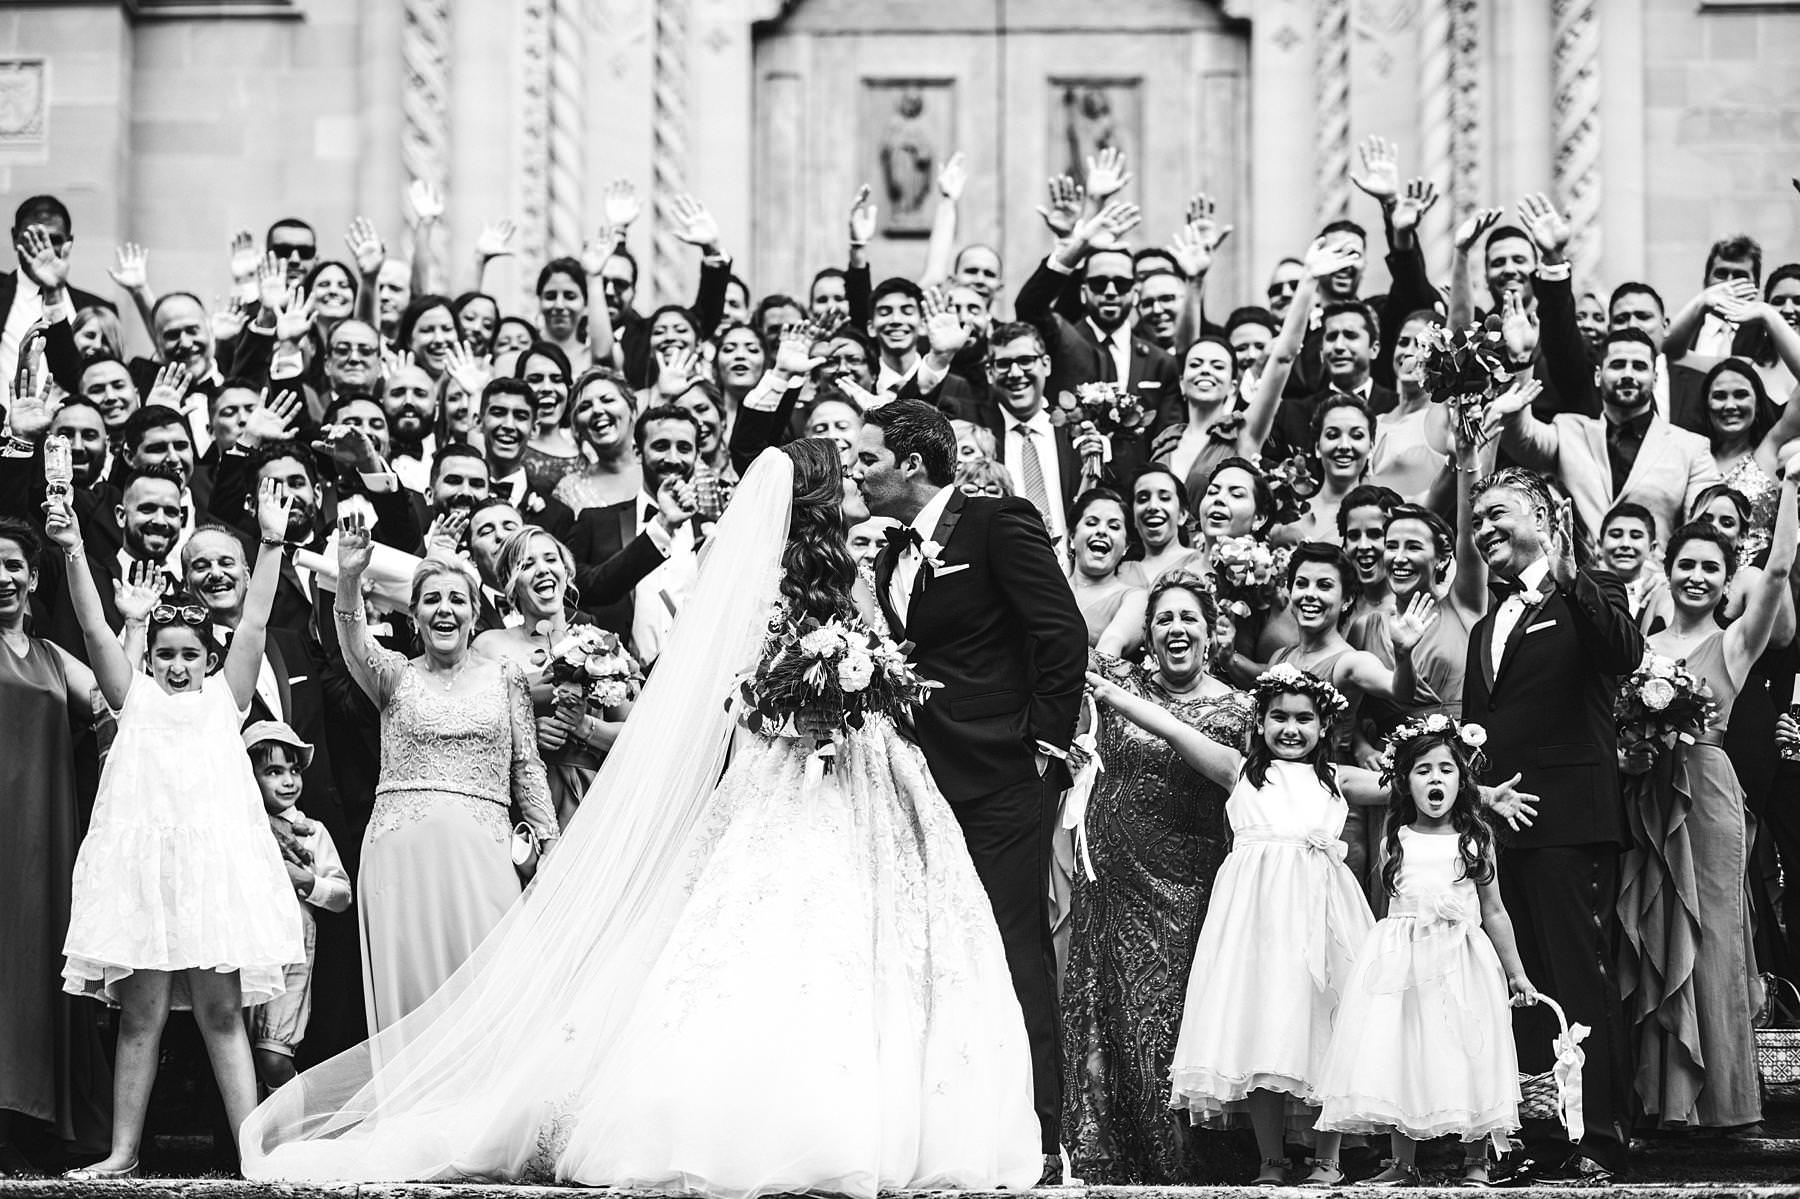 Rippling and sumptuous Tuscany wedding in the elegant Castle of Valenzano. Elegant and exciting bride and groom group photo at Arezzo Cathedral